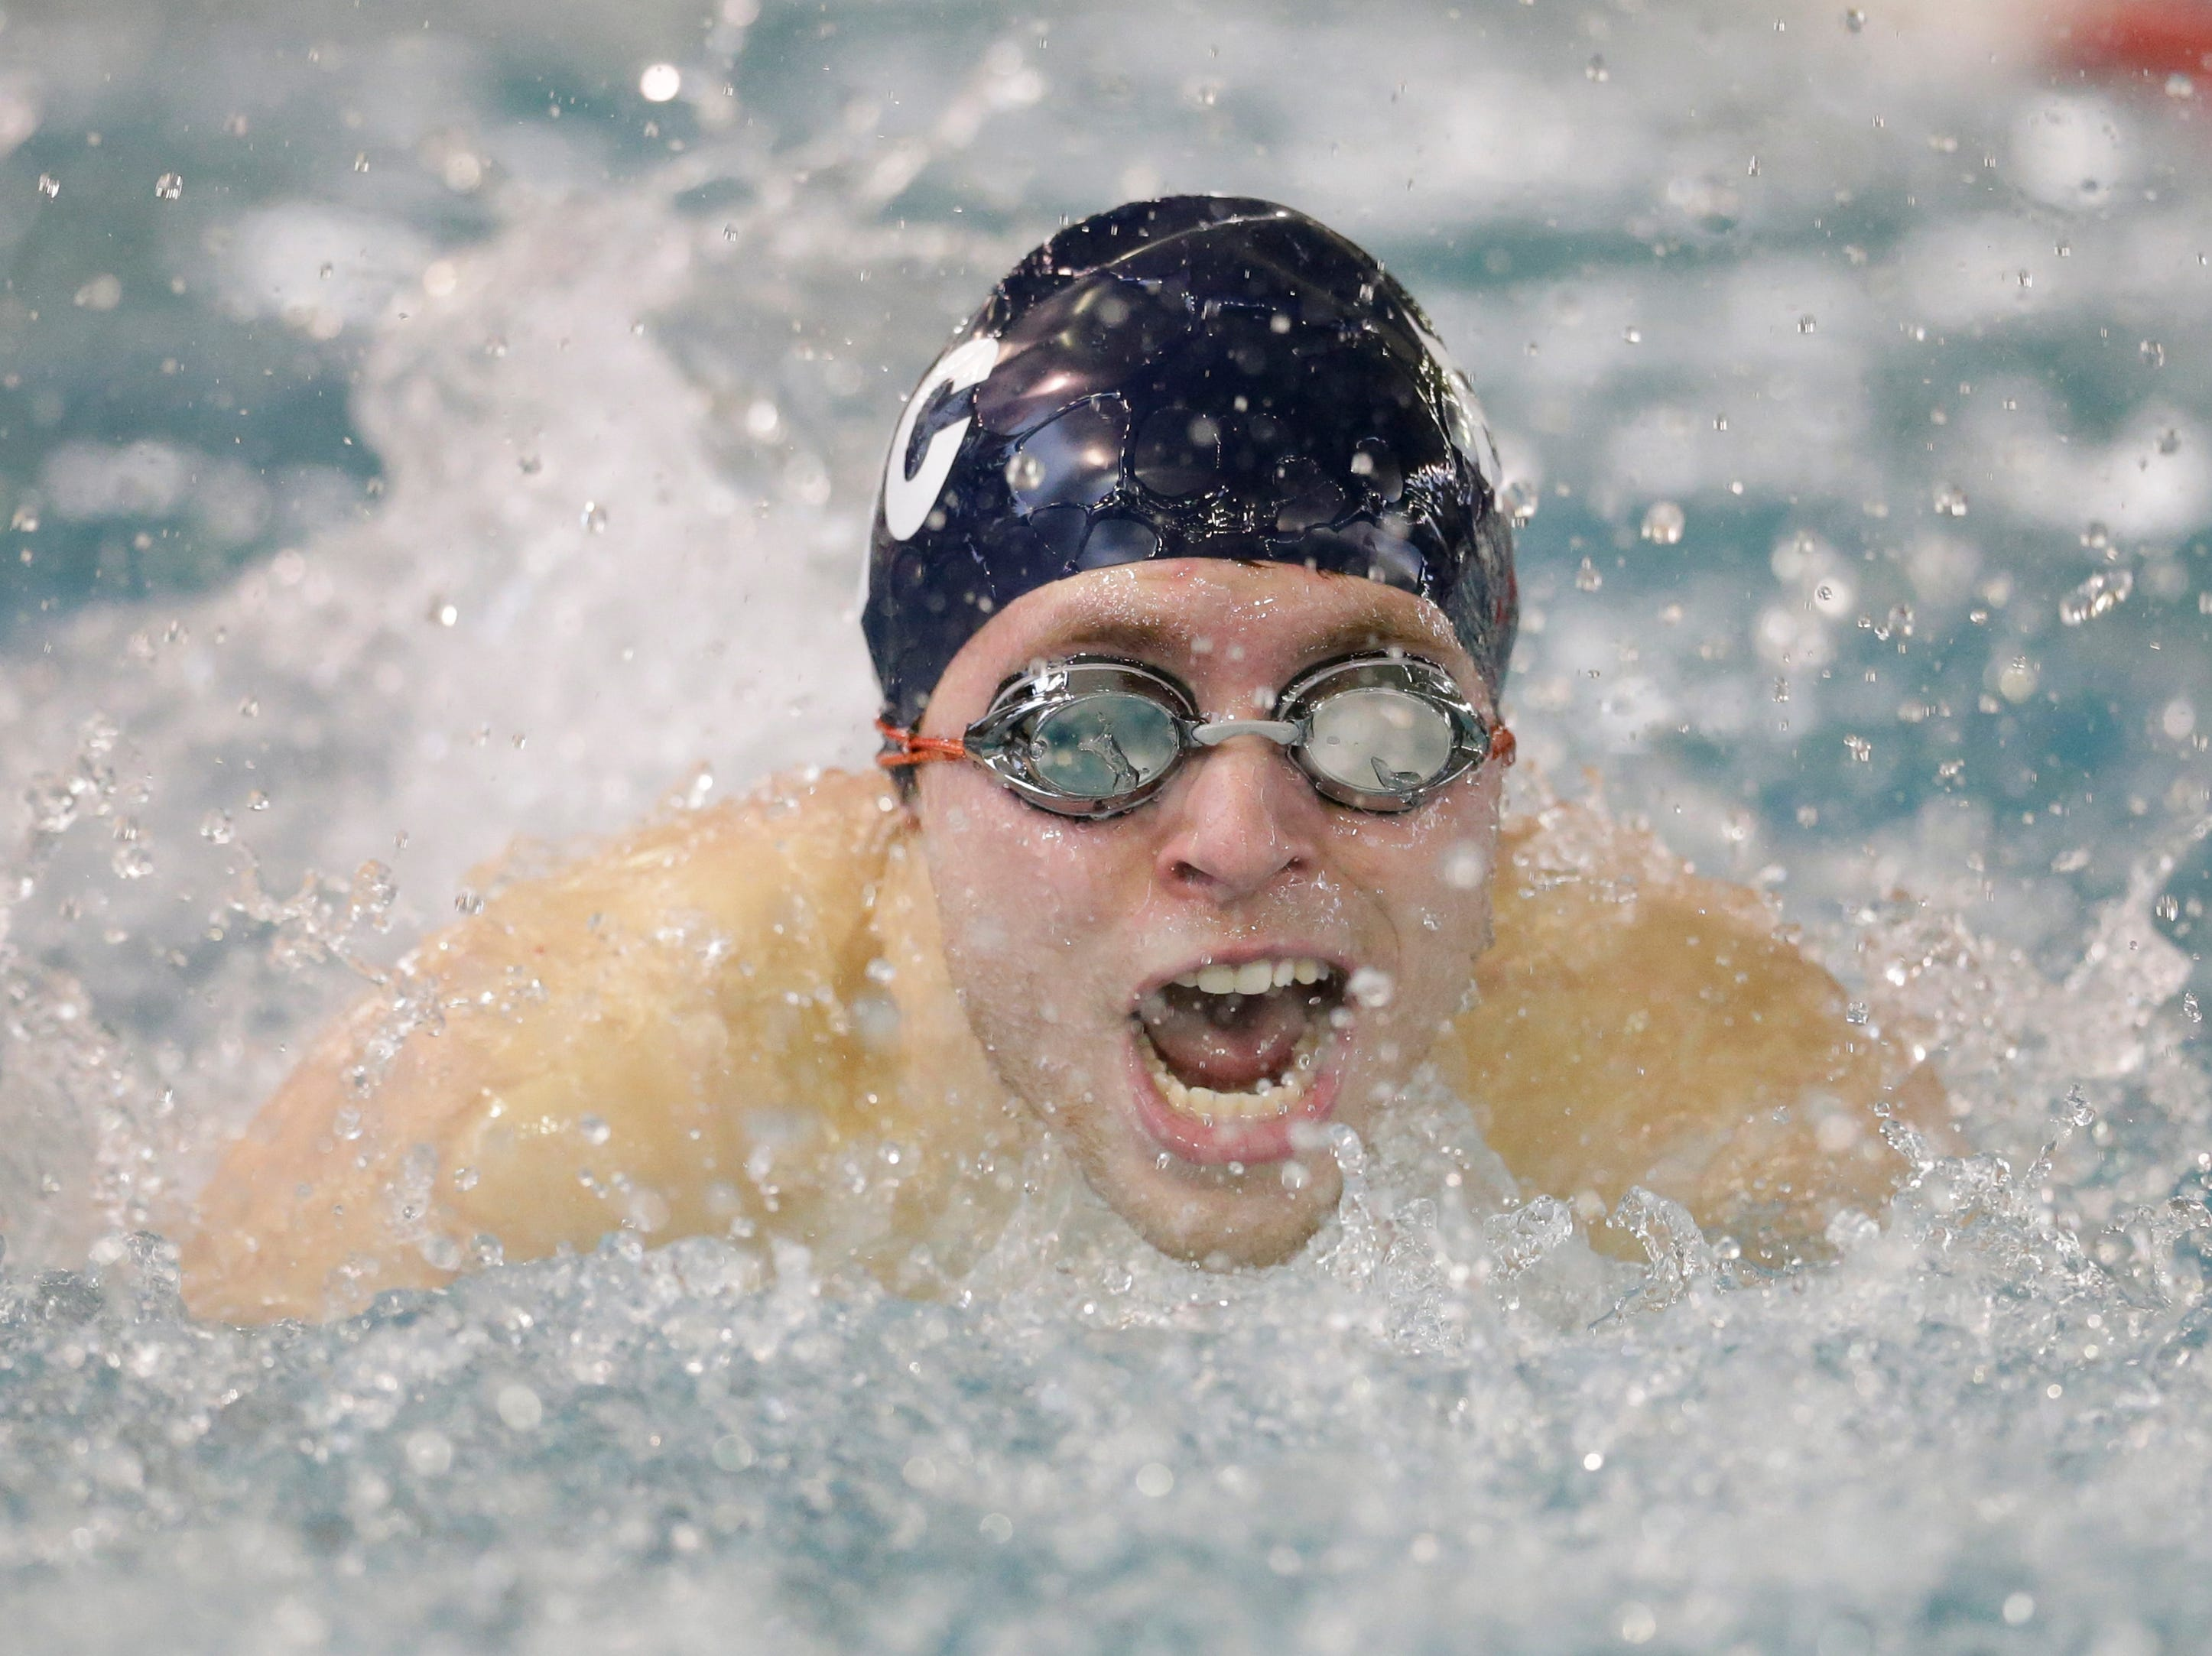 Brillion/Chilton/Valders' Jack Feider swims in the 100-yard butterfly during the Lincoln Boys Swim Invitational at Manitowoc Lincoln High School Saturday, January 12, 2019, in Manitowoc, Wis. Joshua Clark/USA TODAY NETWORK-Wisconsin